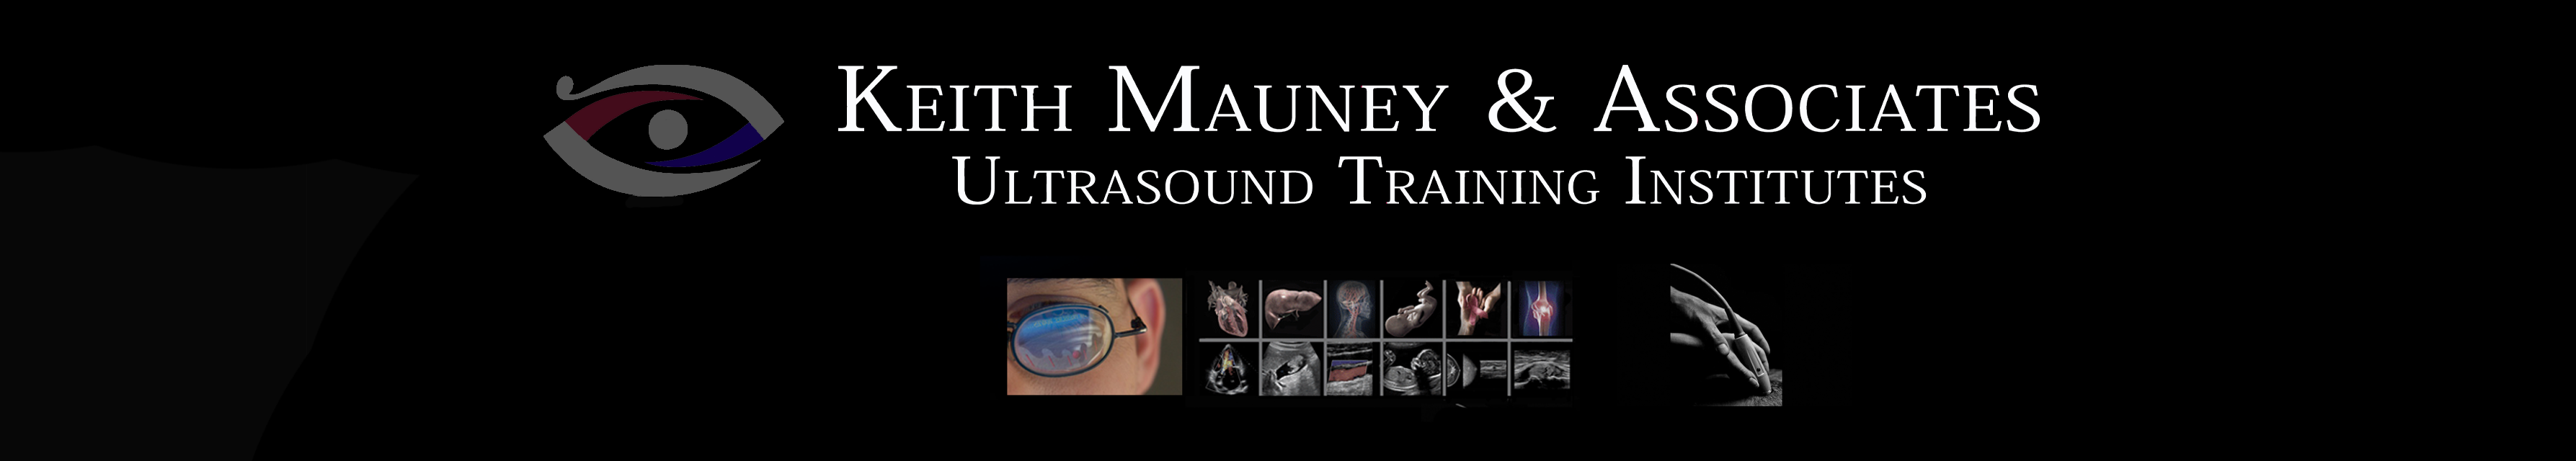 Keith Mauney & Associates Hands-on Ultrasound Training Institutes